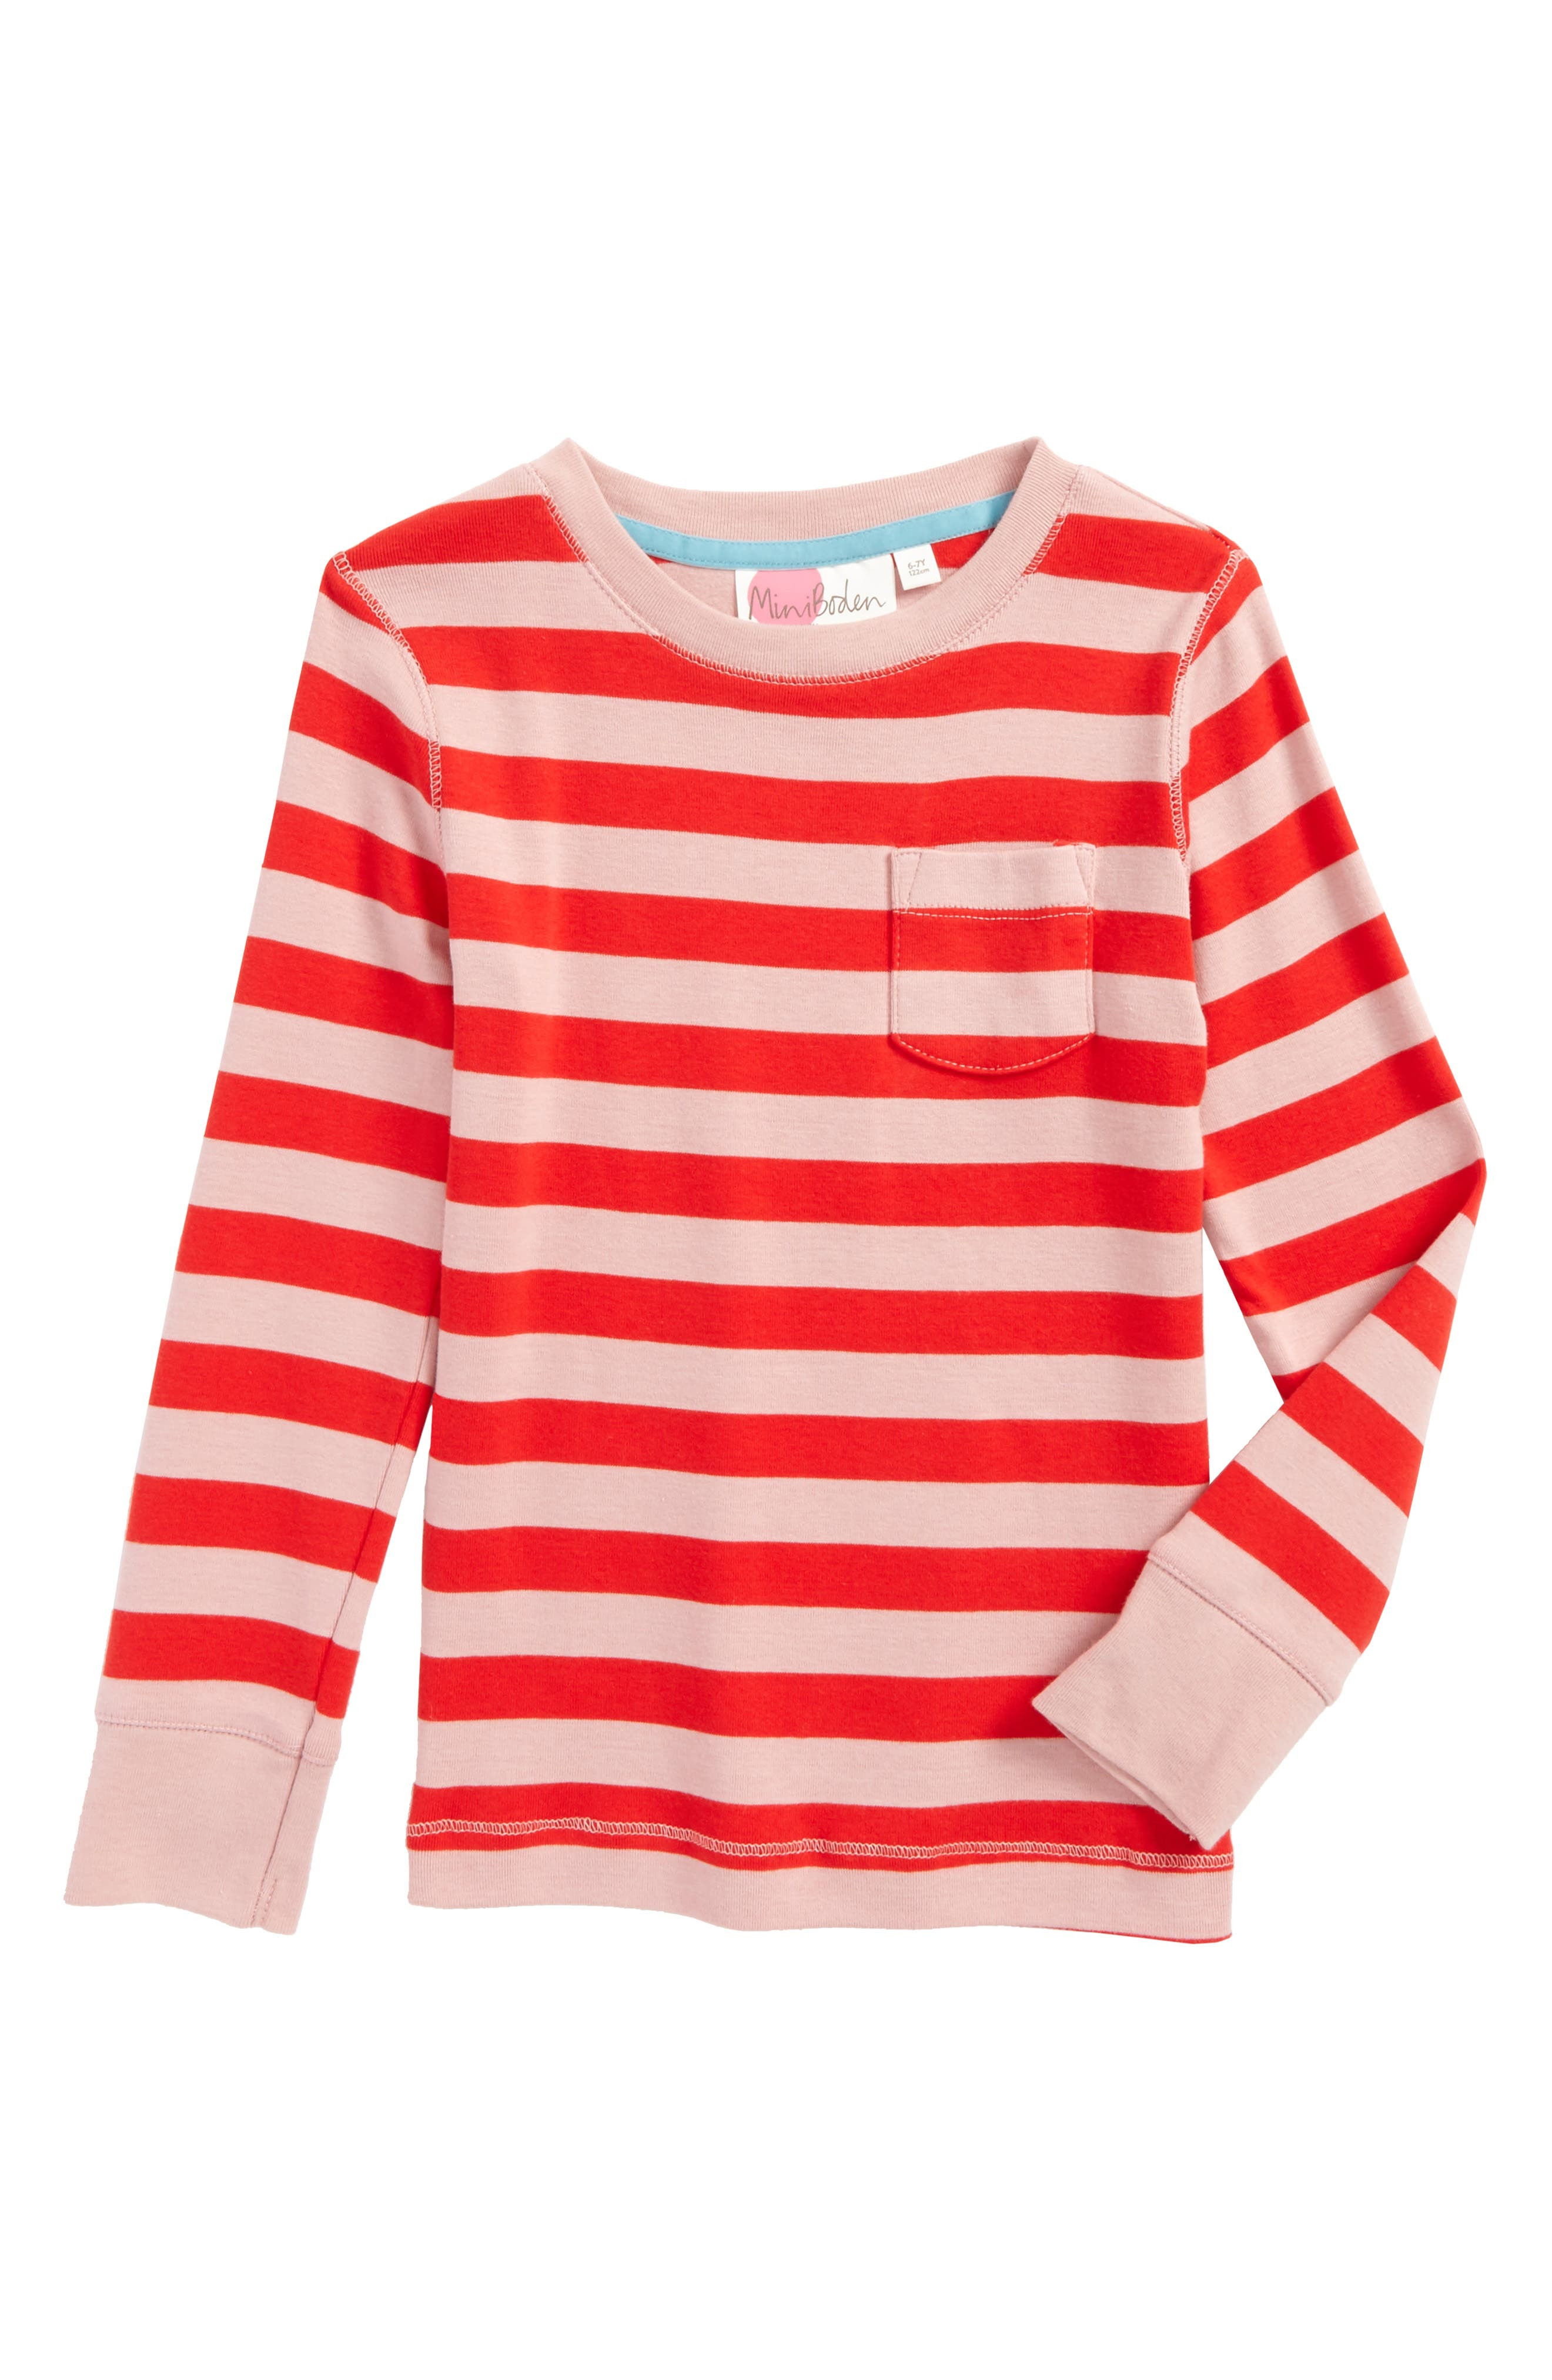 Mini Boden Everyday Tee (Toddler Girls, Little Girls & Big Girls)